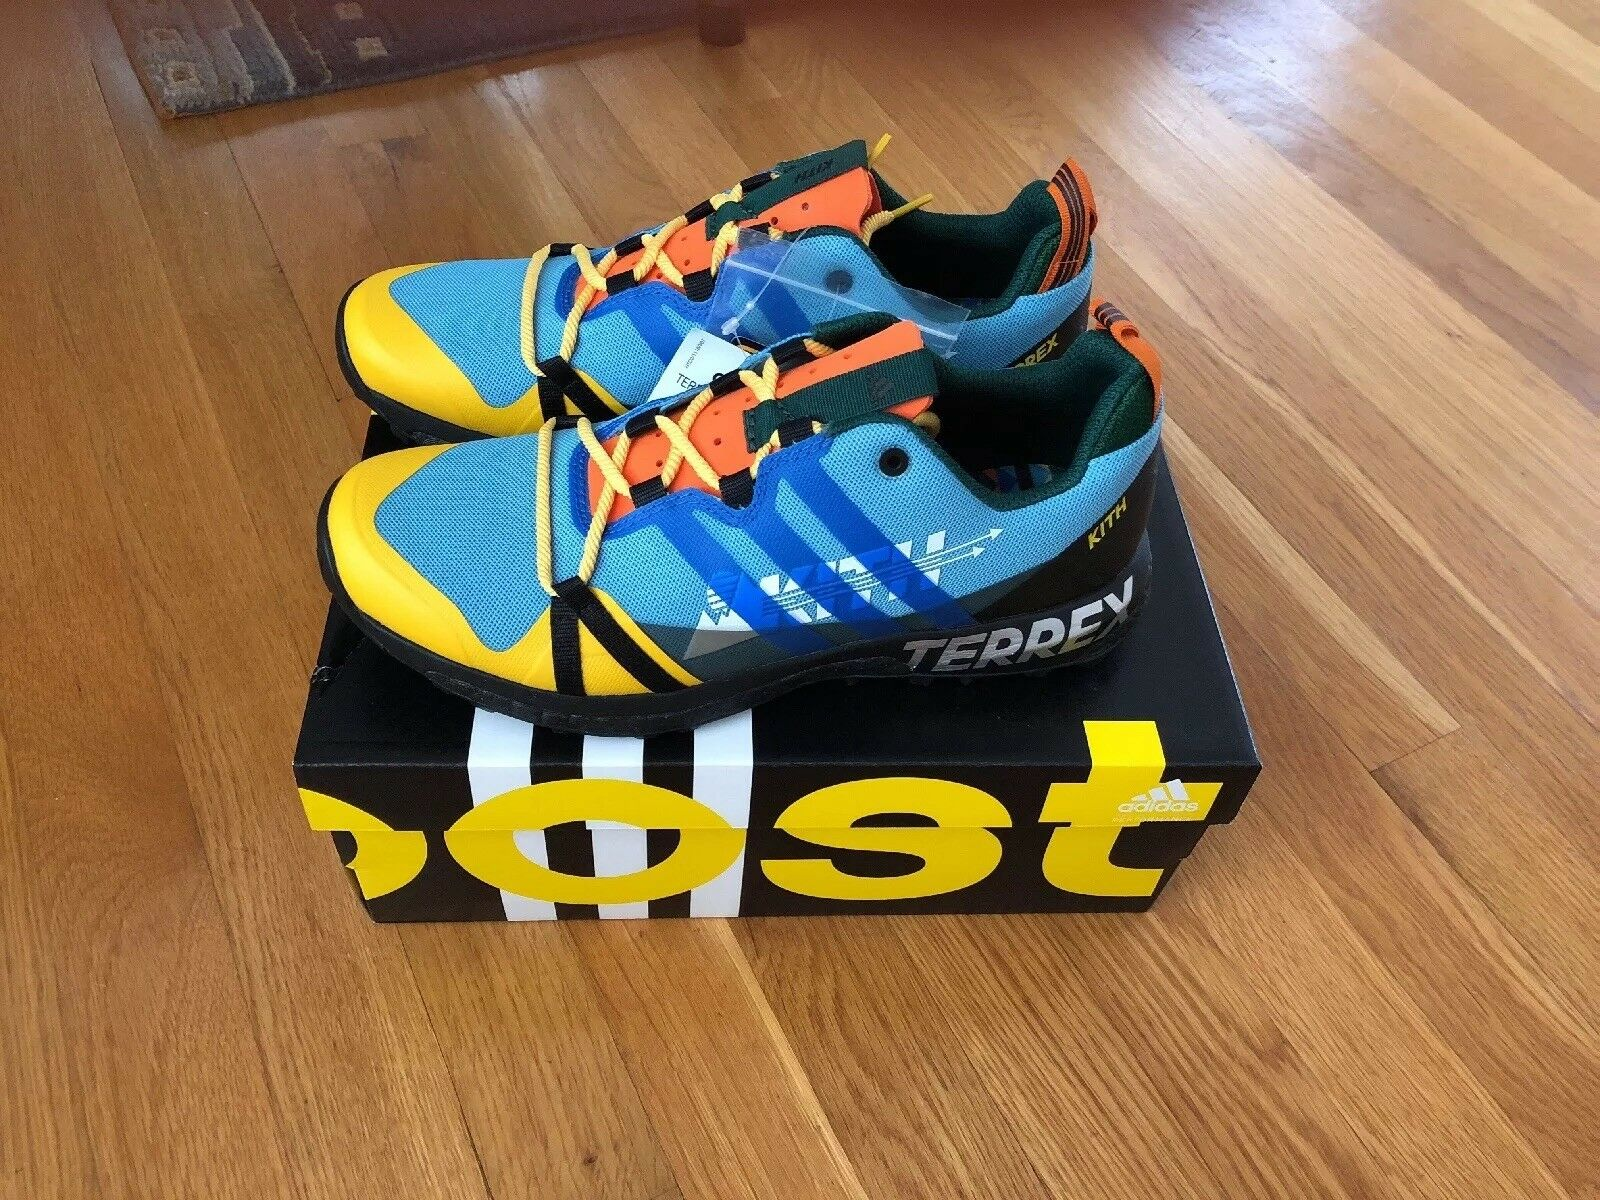 Adidas Terrex Skychaser KITH EEA Agravic Size 7 IN HAND SAME DAY SHIPPING